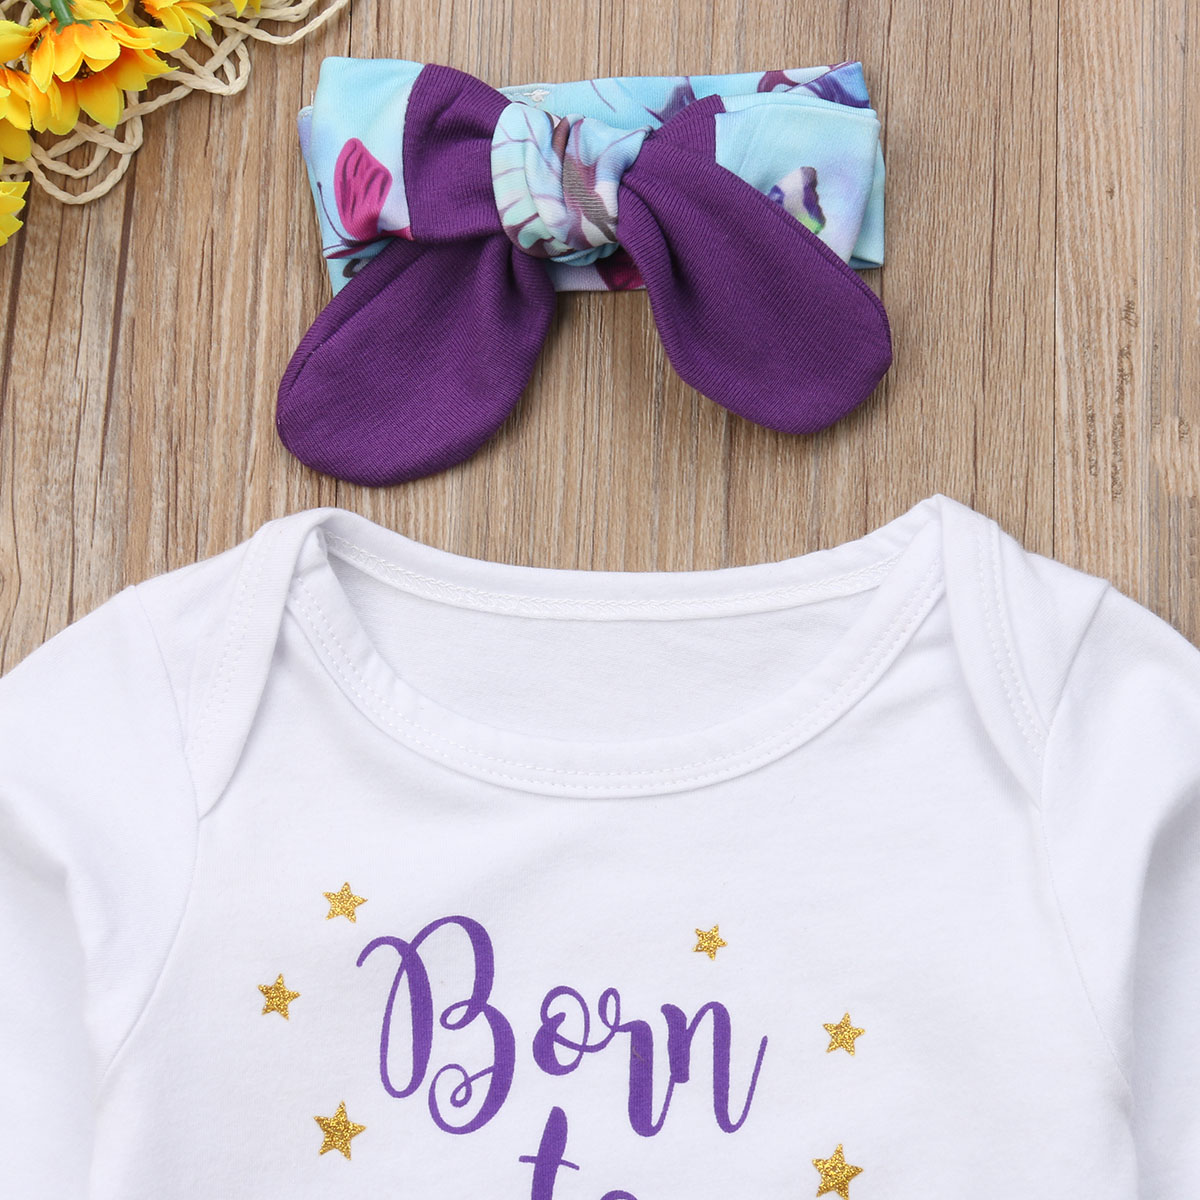 27abbdc7e Newborn Baby Girls Floral Clothing Cotton Tops Bodysuits Long Sleeve ...